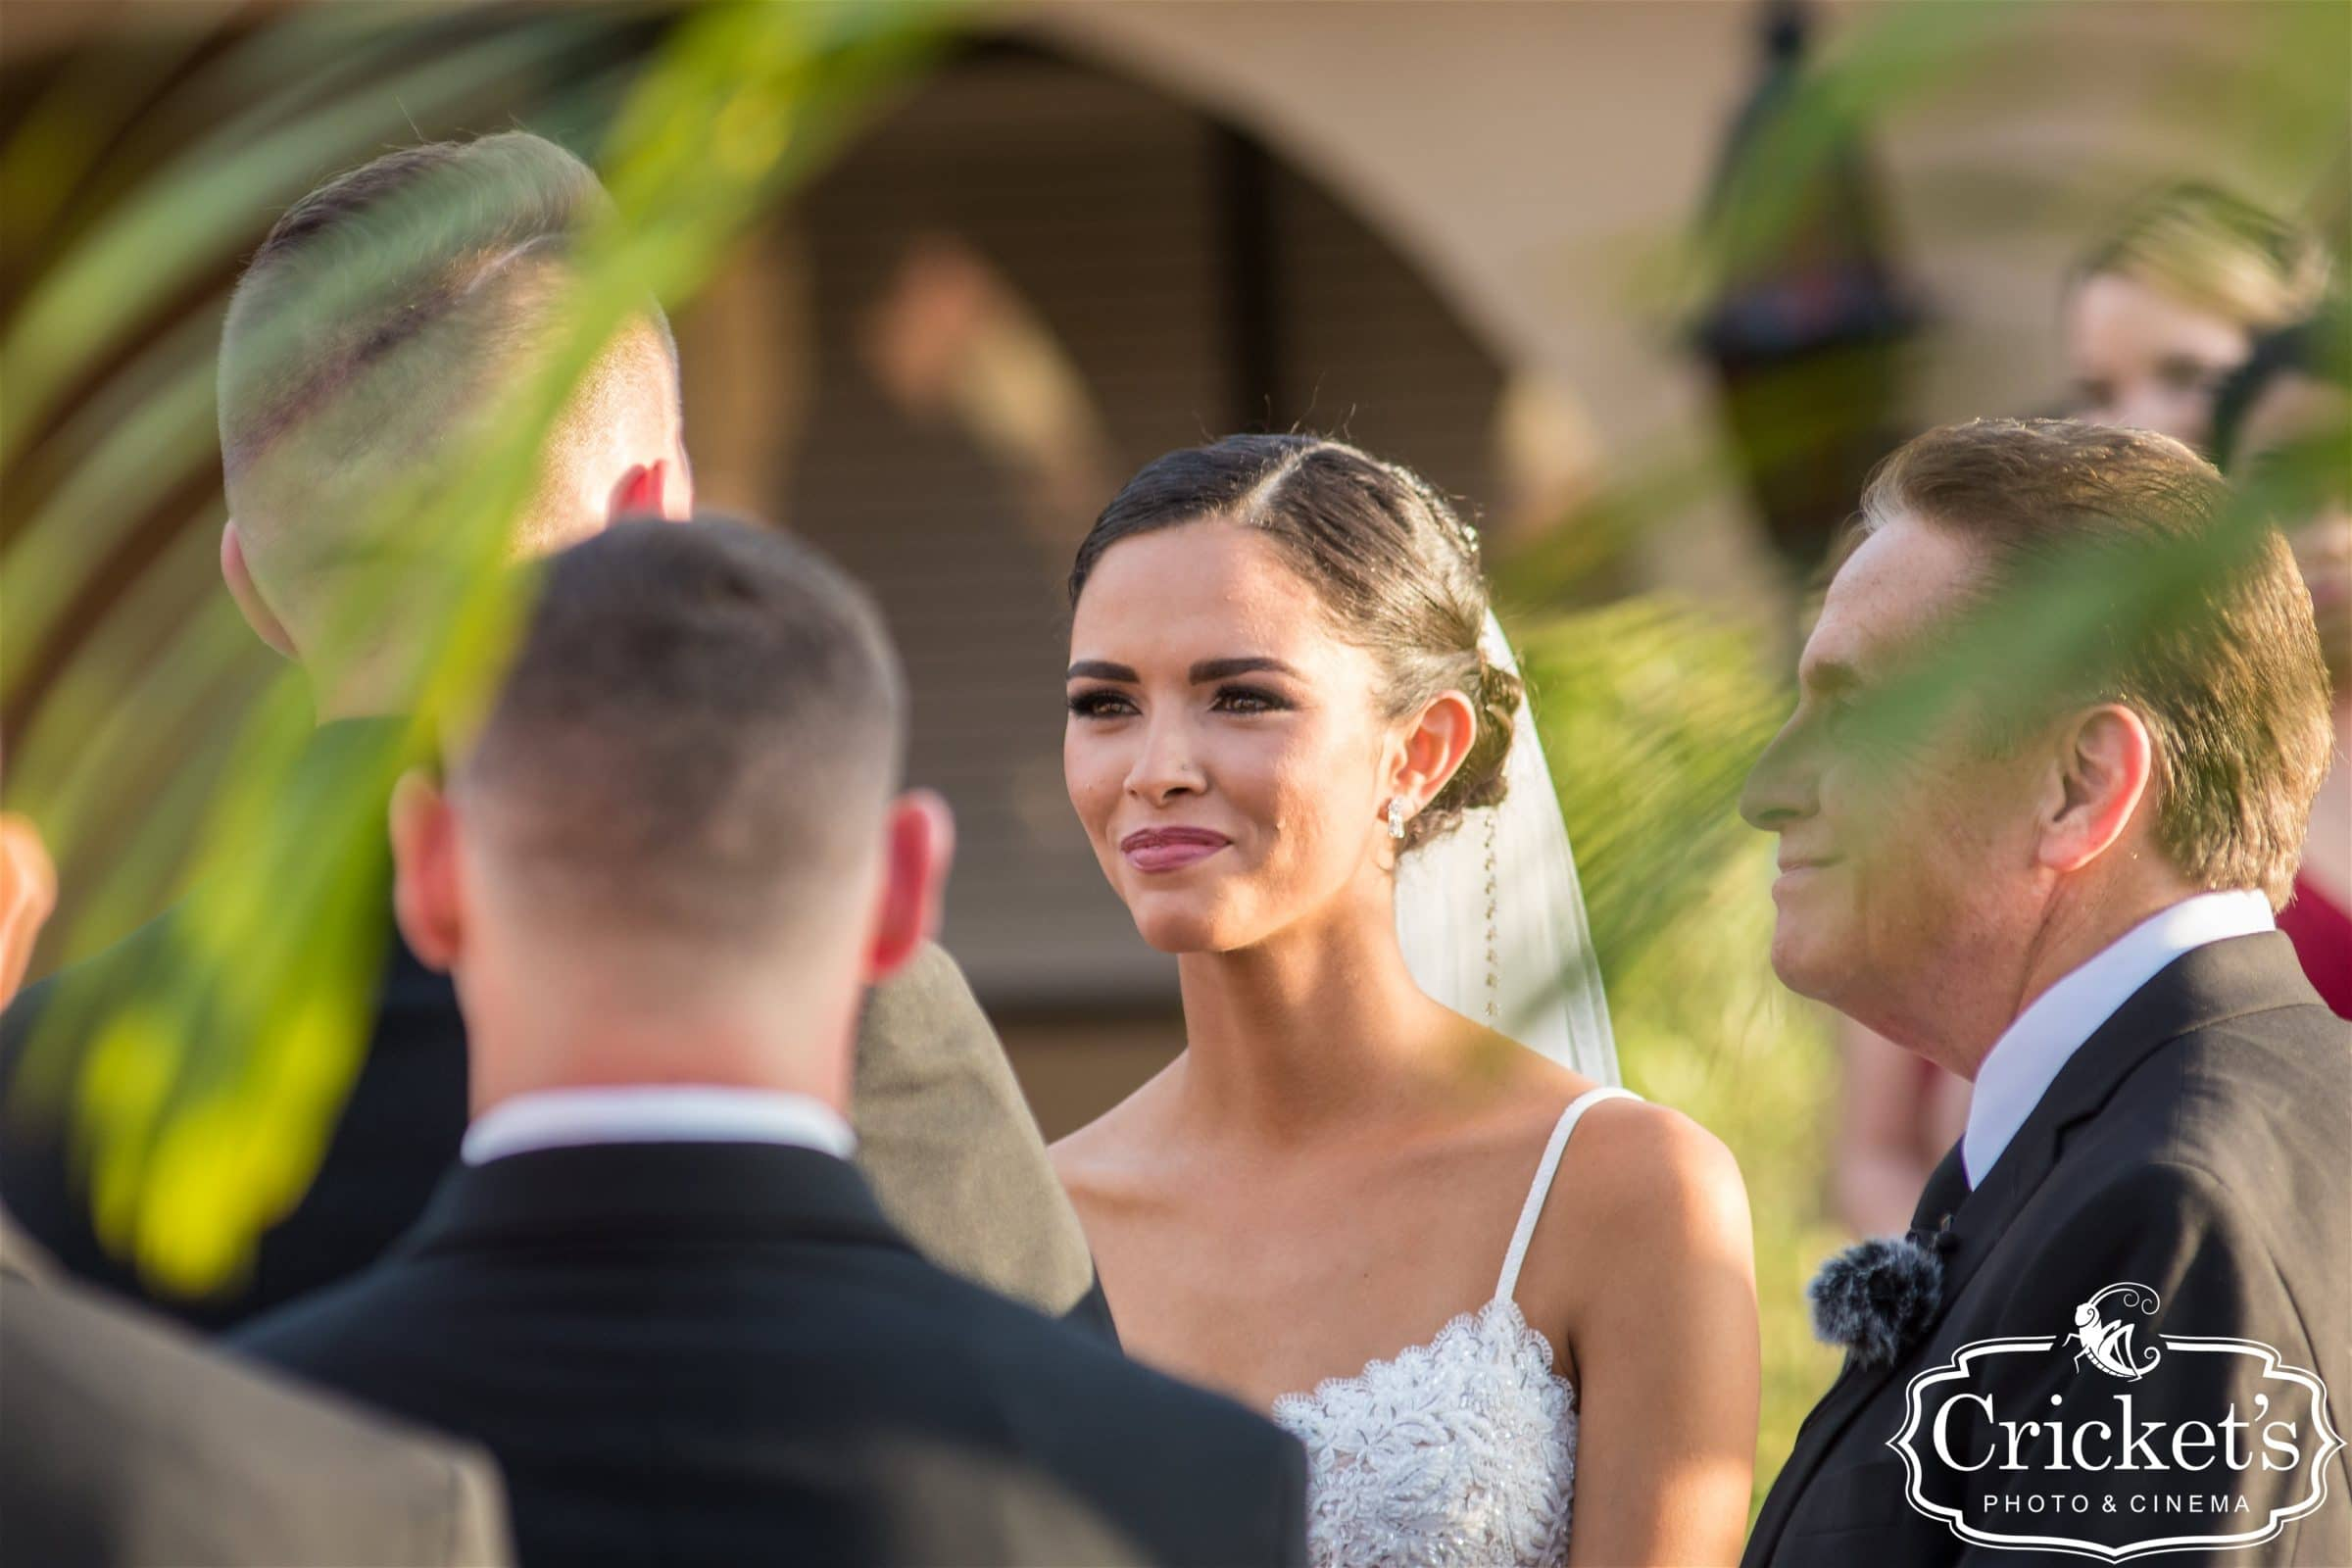 Bride getting emotional during ceremony